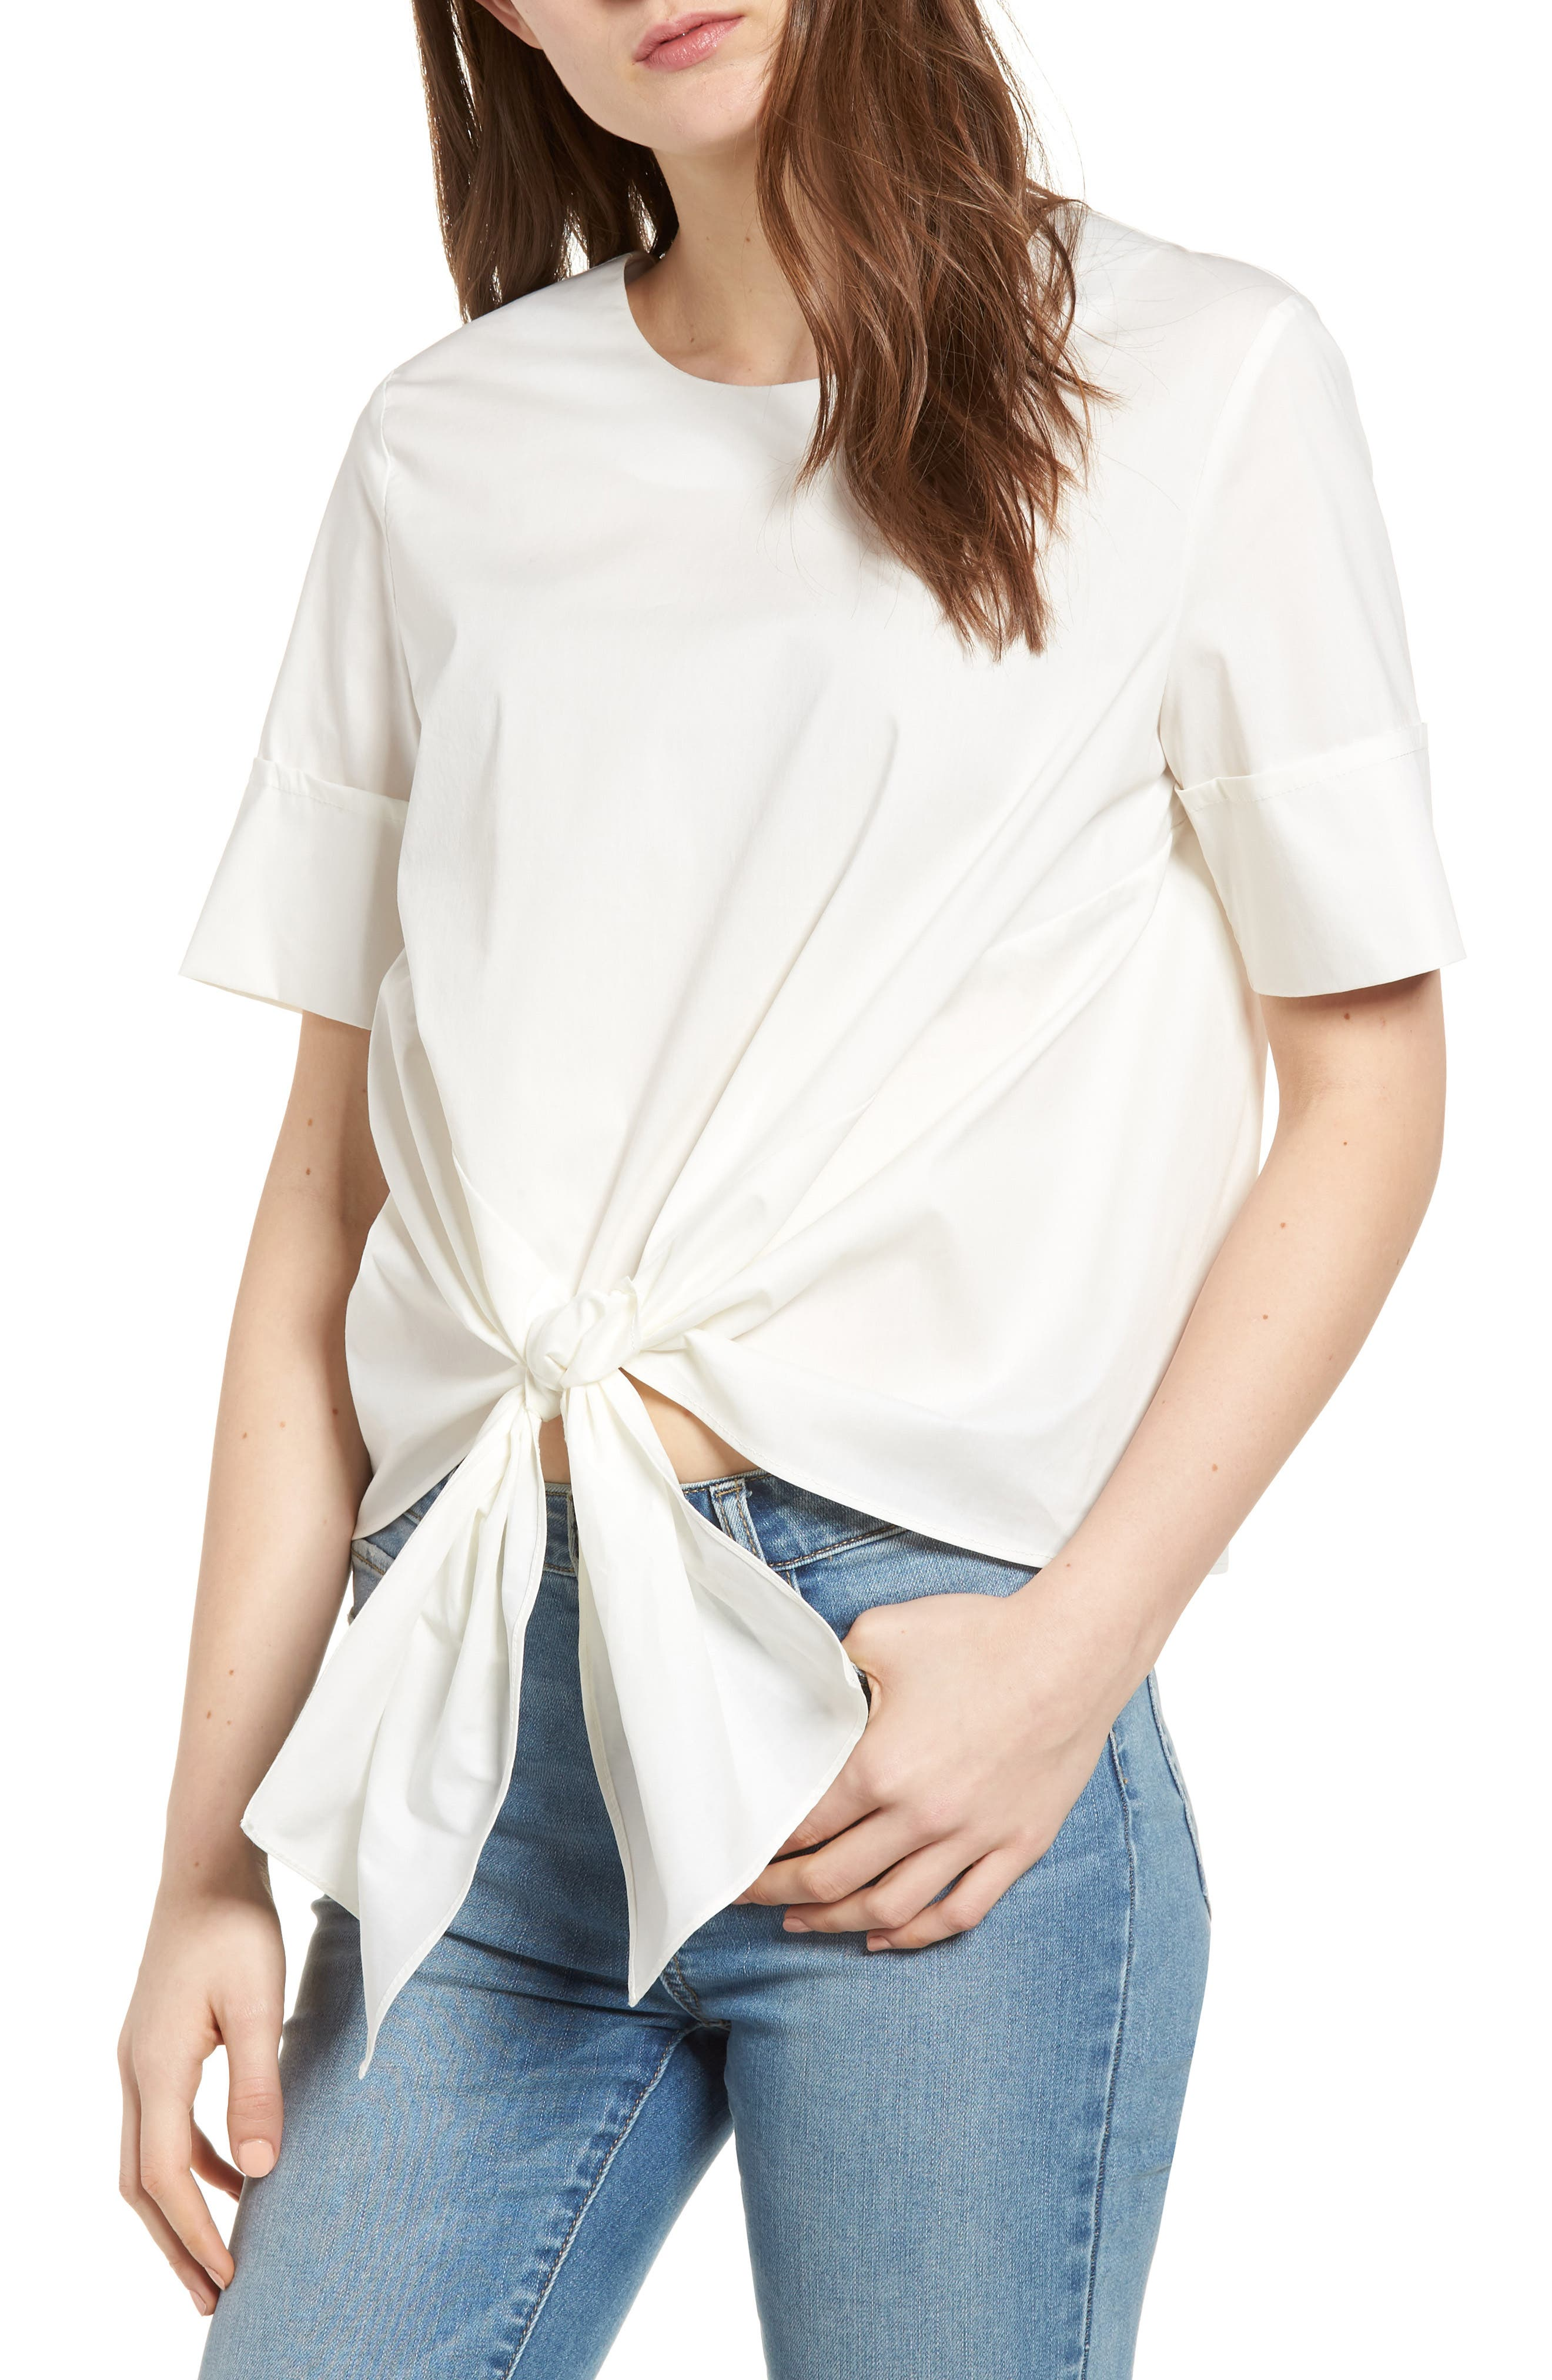 Bishop + Young Front Tie Blouse,                             Main thumbnail 1, color,                             WHITE